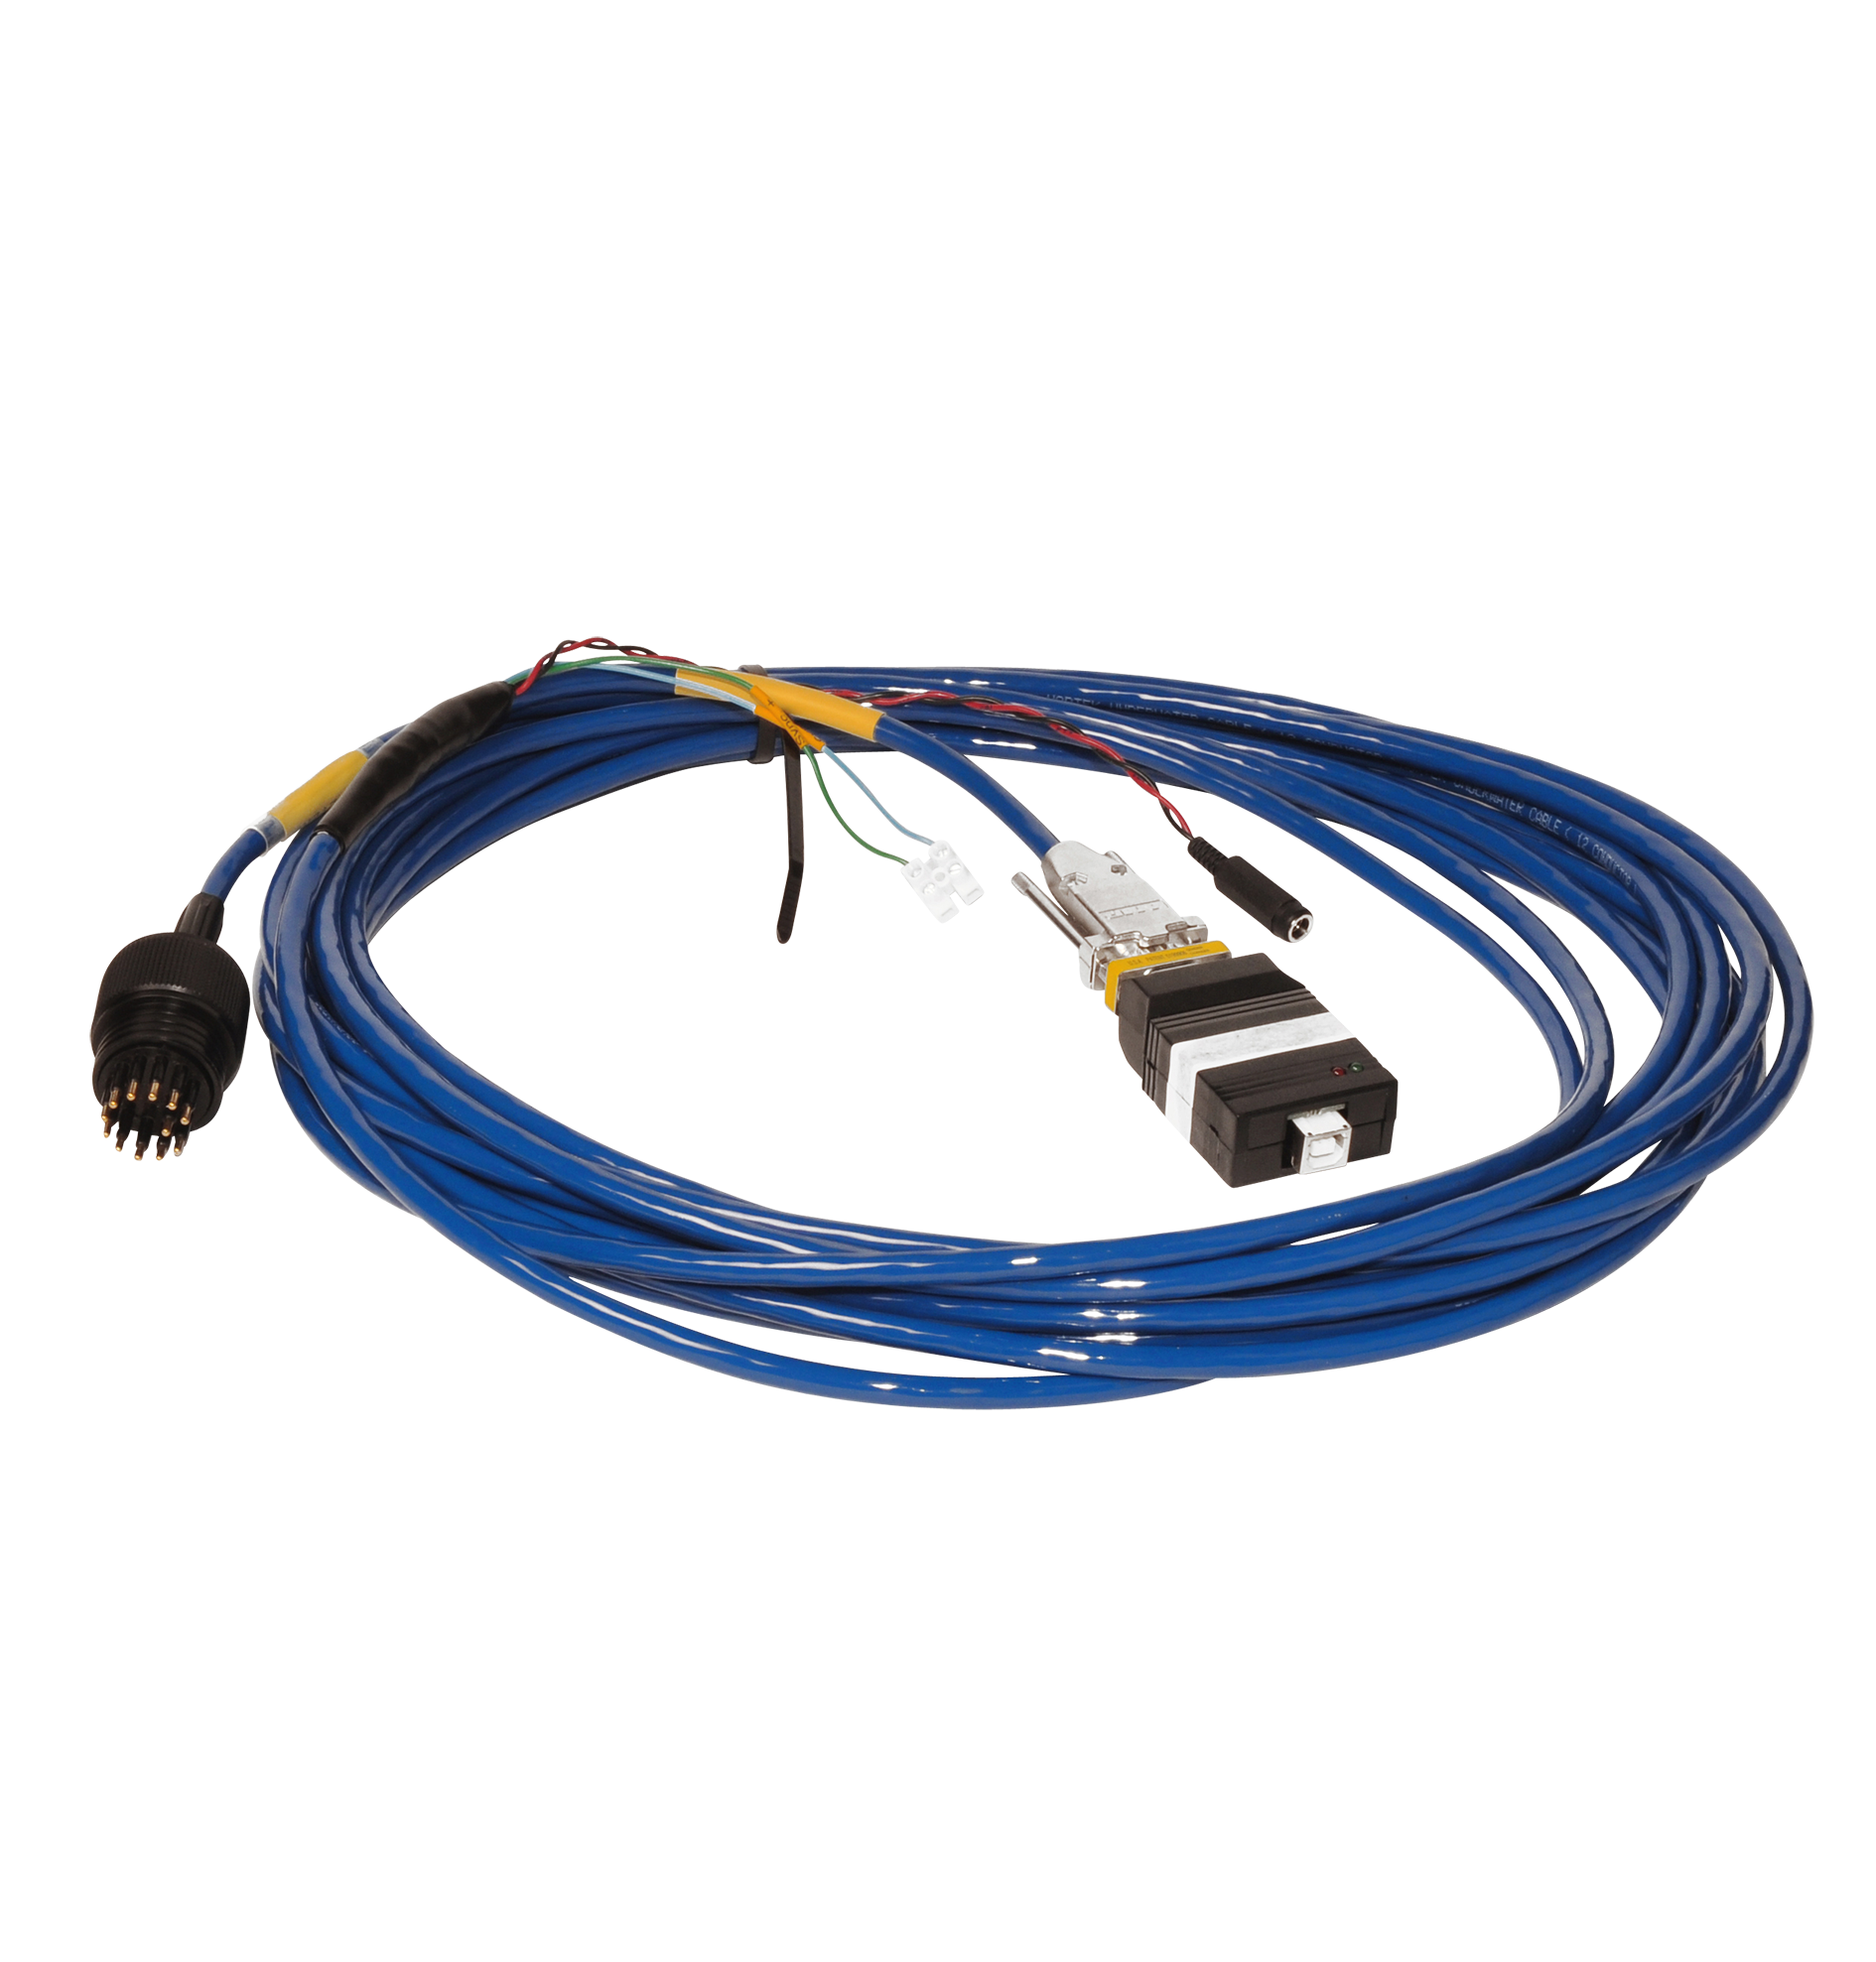 Cable With 12 Pin Underwater Connector Including Rs485 To Nortek Rs 485 Wiring Usb Converter